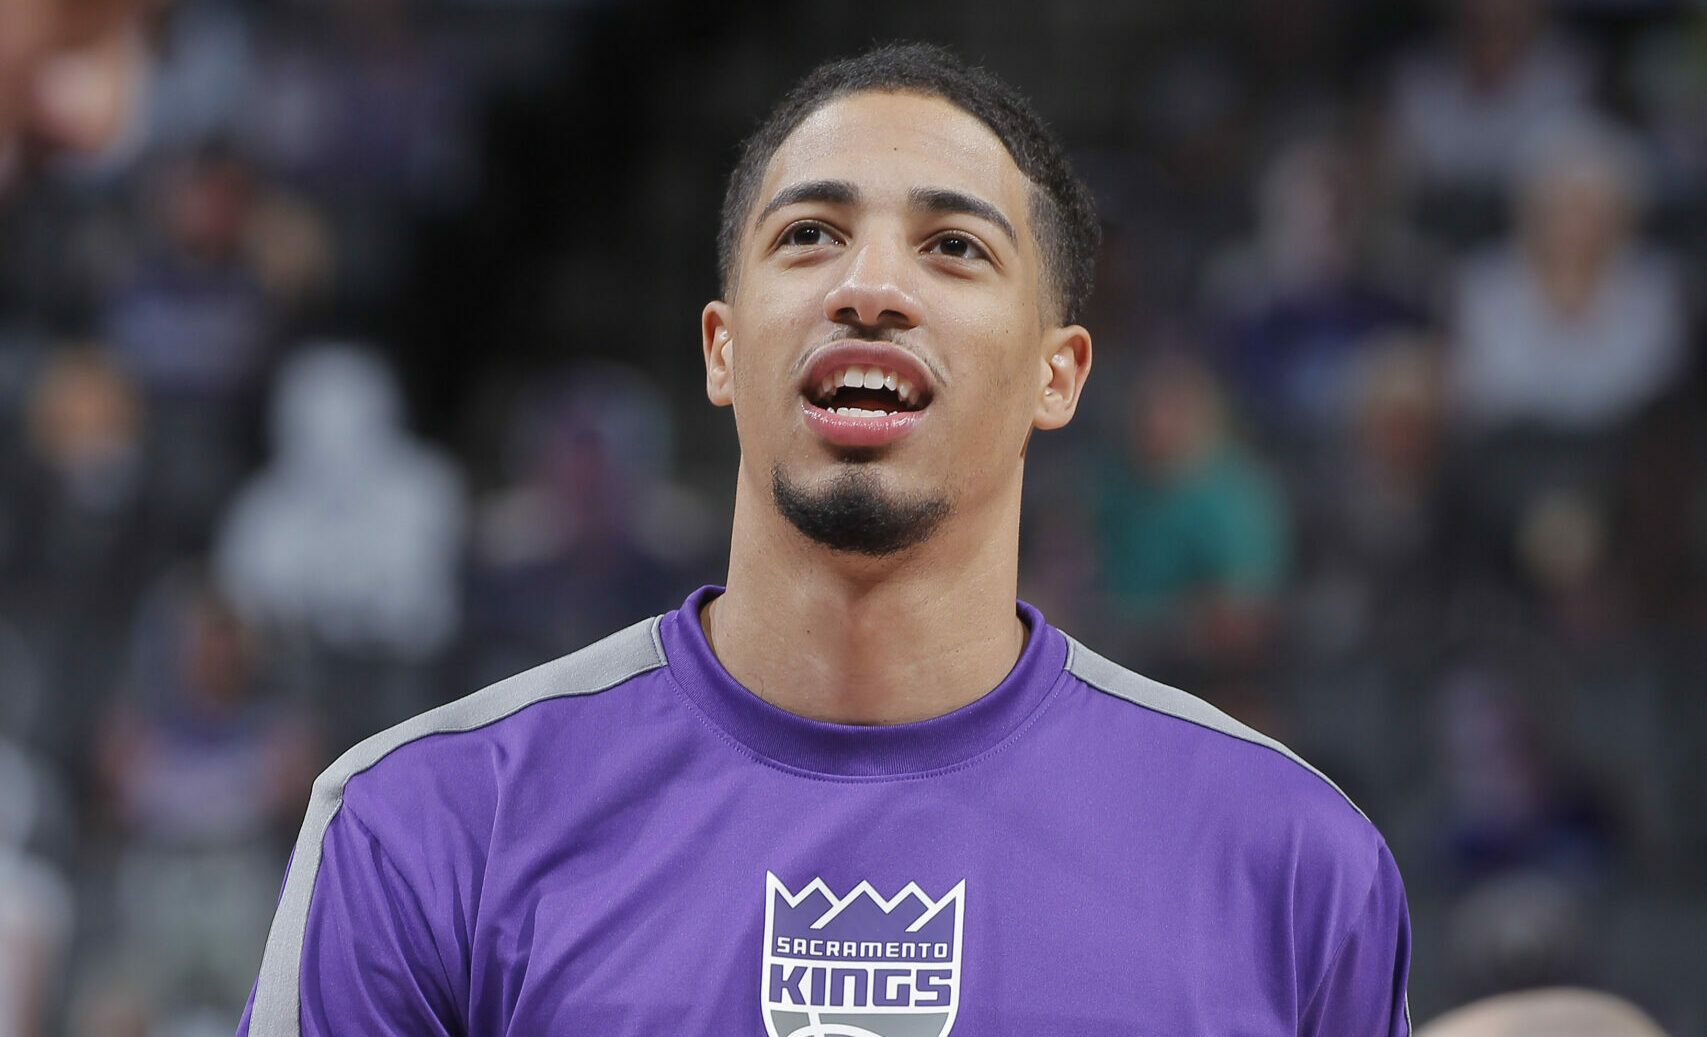 Rookie Tyrese Haliburton has been a bright spot for the Kings so far